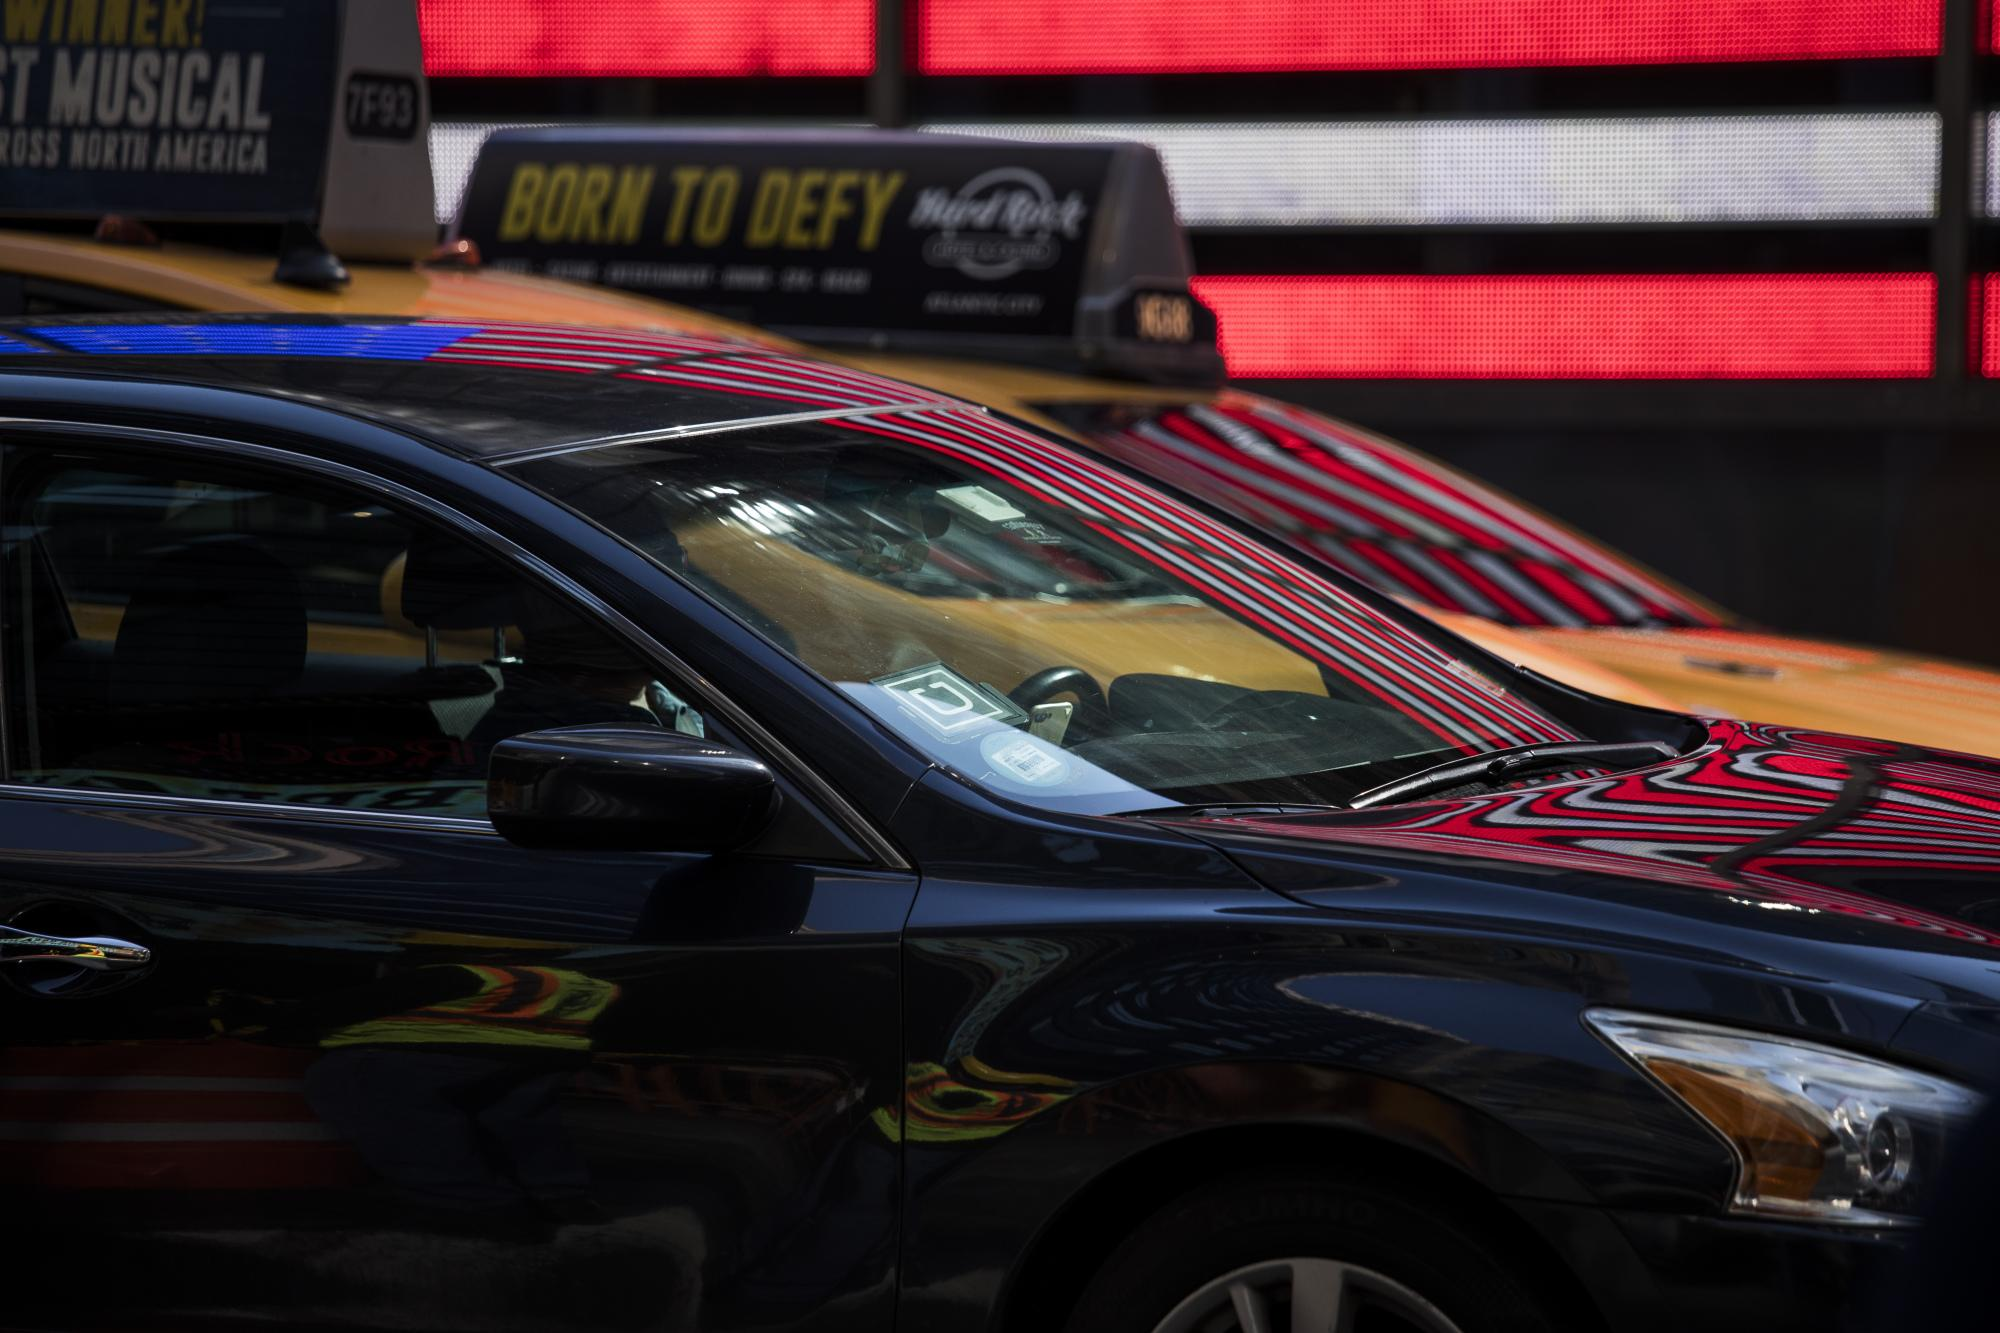 A New Yorker's Guide to the Sudden Upheaval in Uber and Taxi